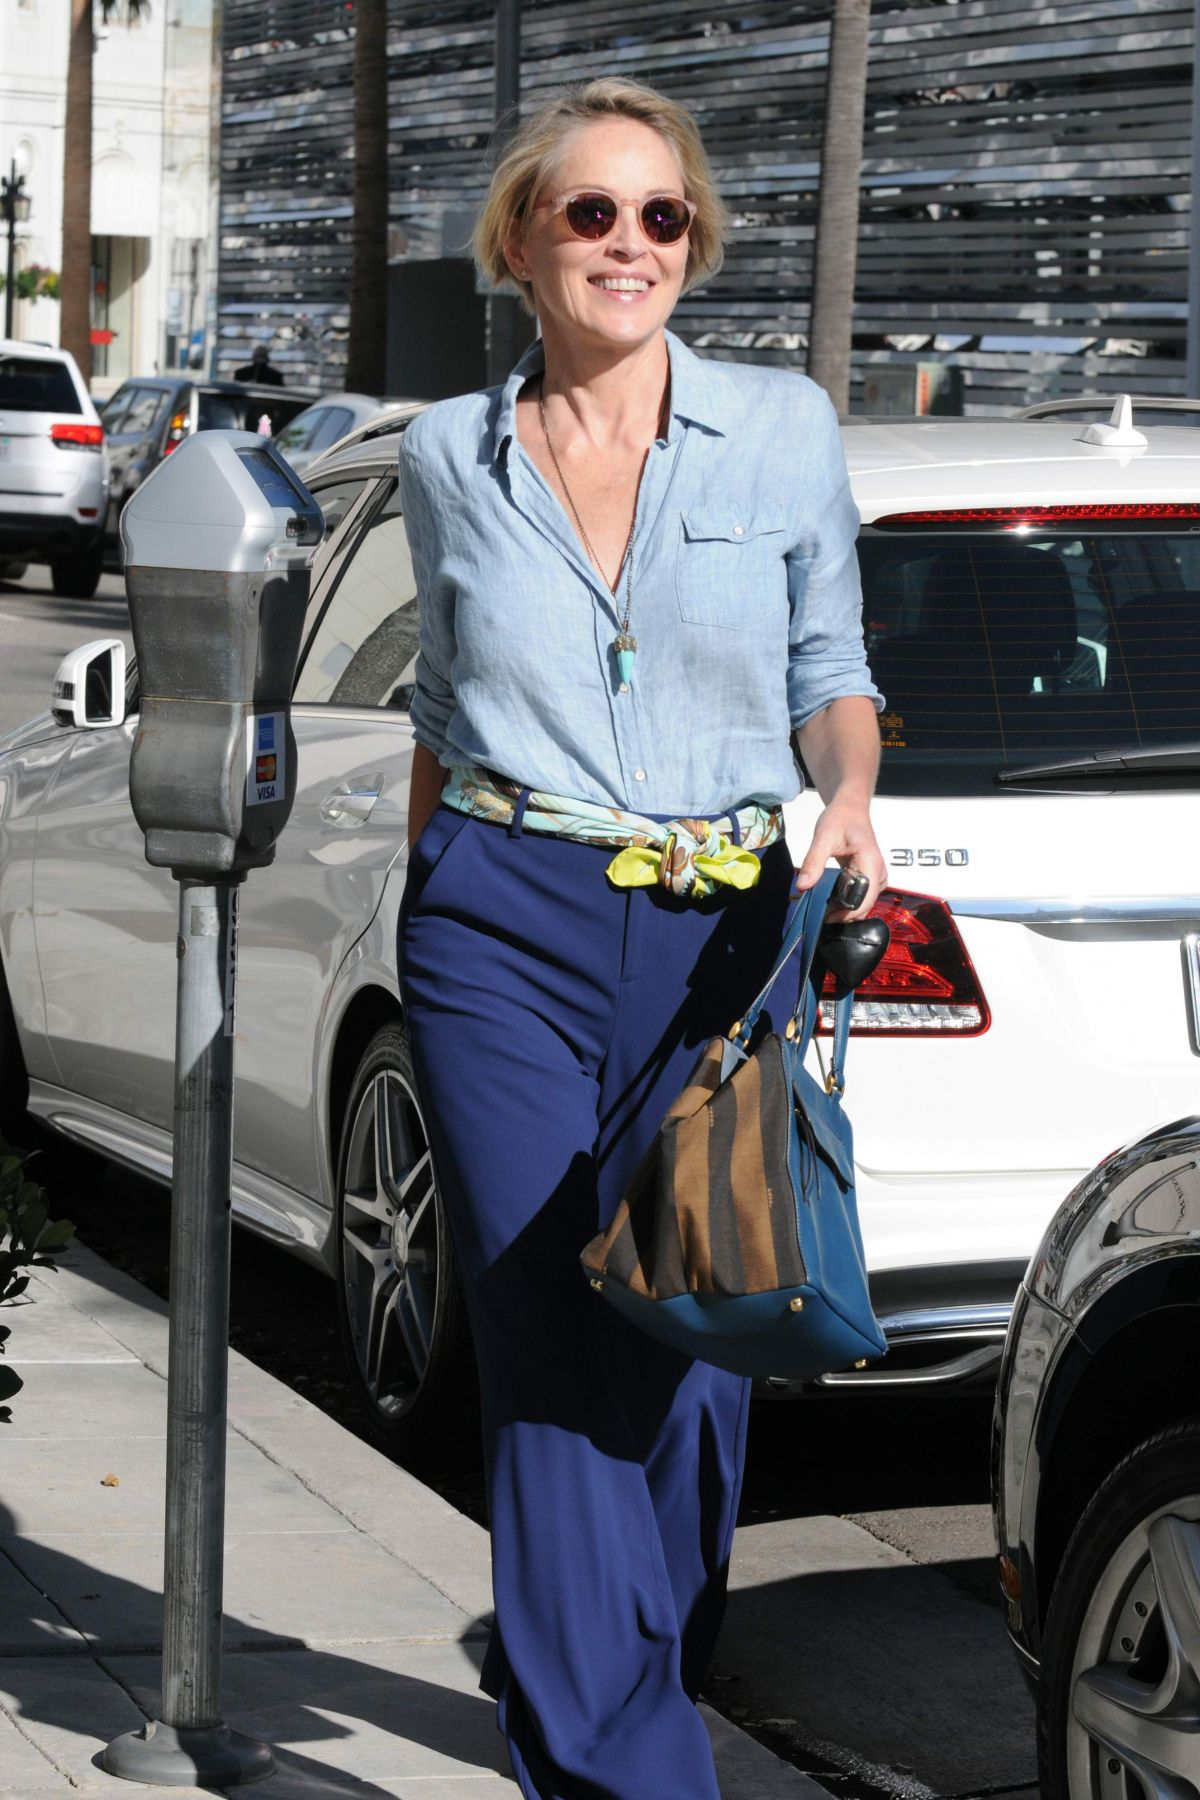 sharon-stone-out-for-lunch-in-beverly-hills-01-30-2017_2.jpg